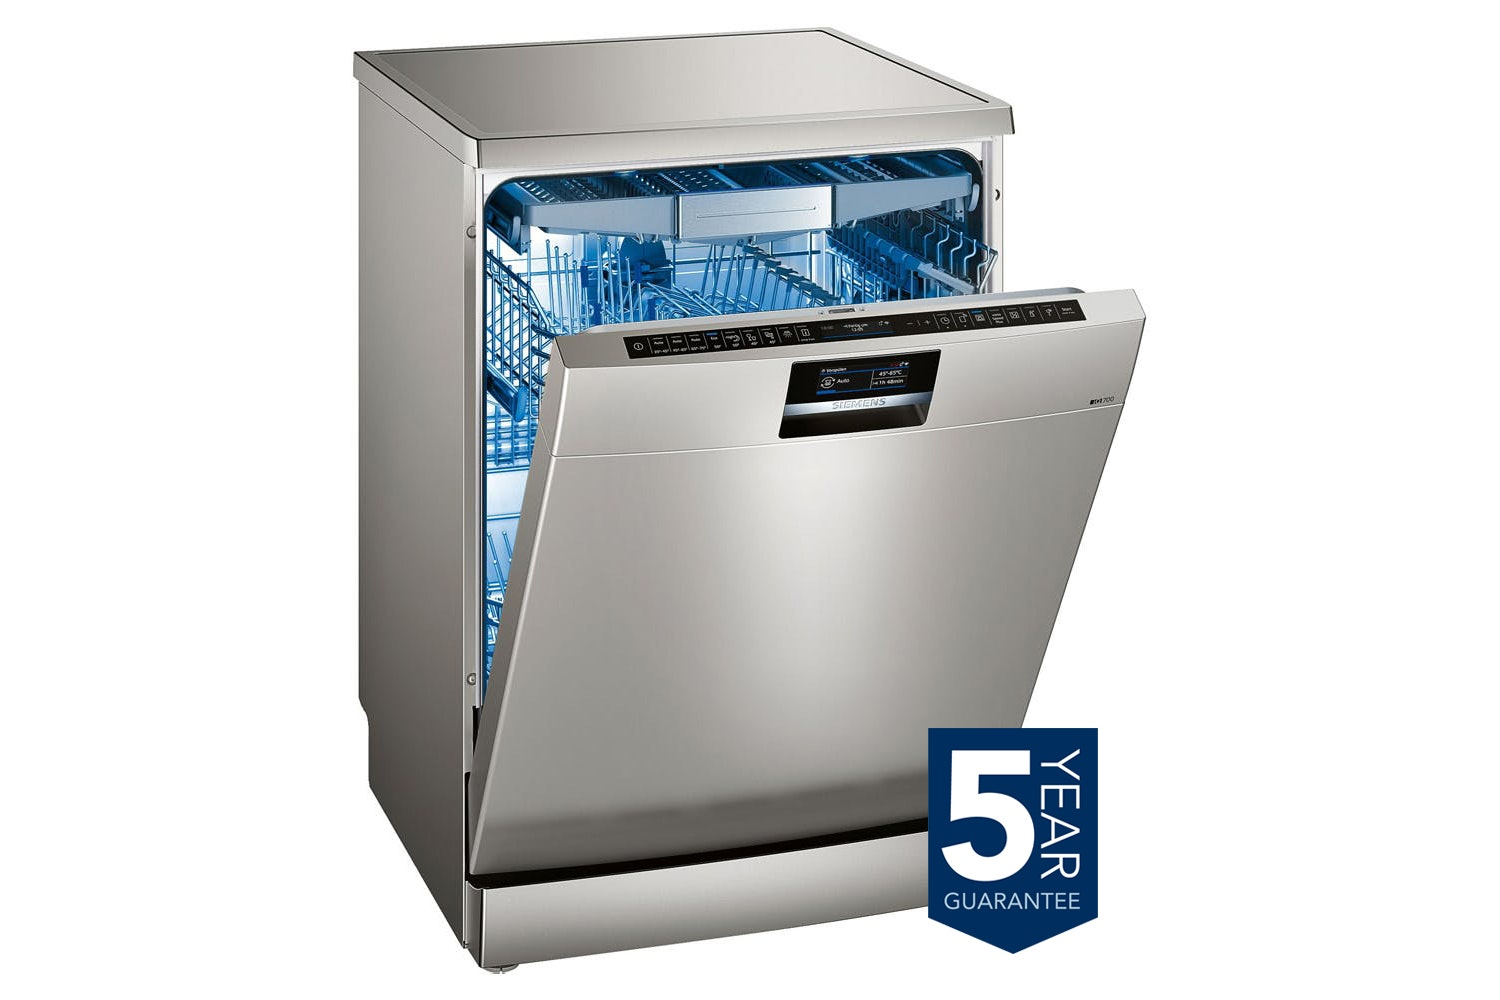 Siemens 13 Place Freestanding Dishwasher | SN278I26TE